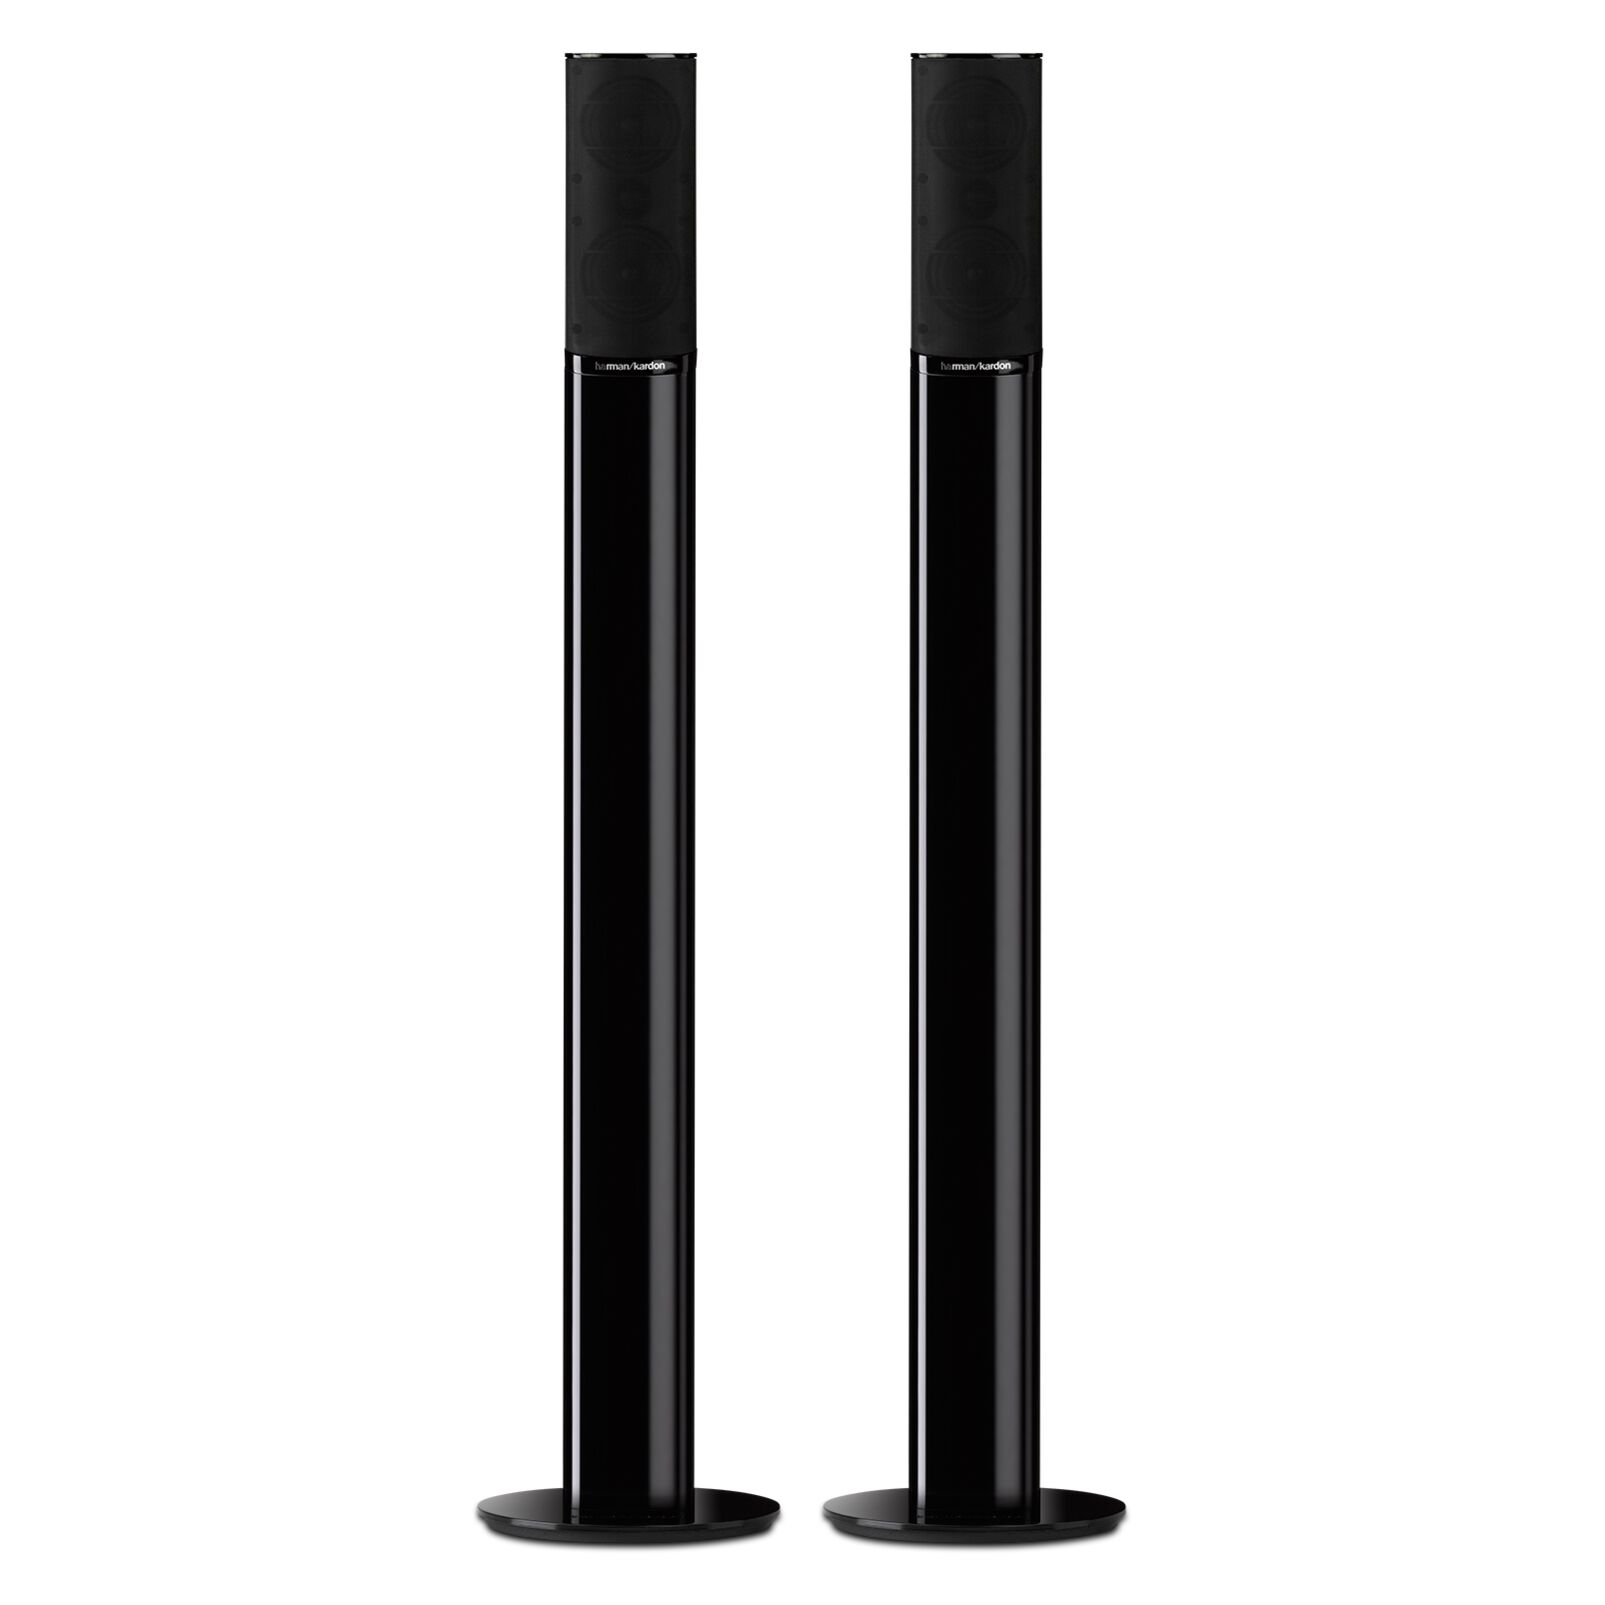 Image of   harman kardon HTFS 2 Black Lacquer